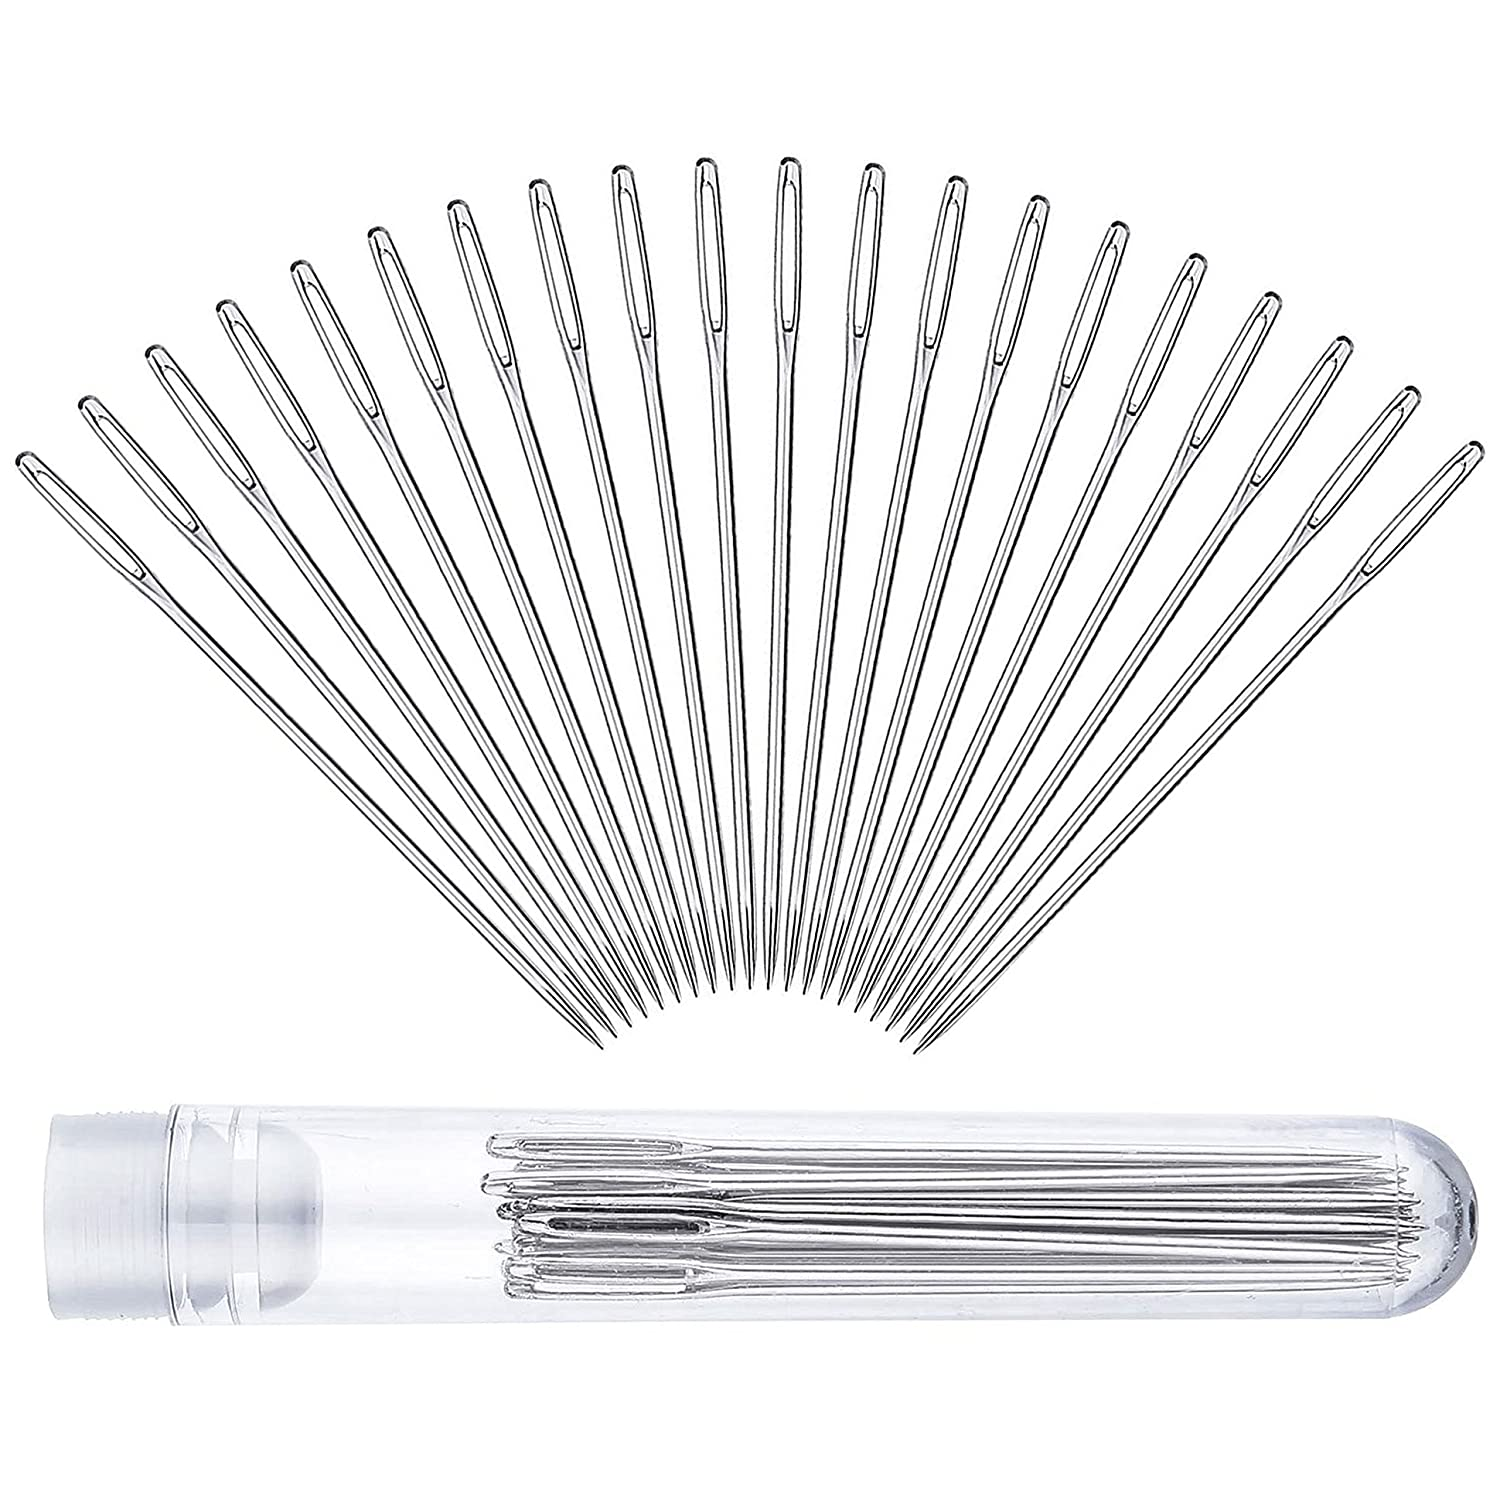 Auvanteo 20-Pack 5.2cm Large-Eye Stitching Needles with Clear Bottle for Leather Projects